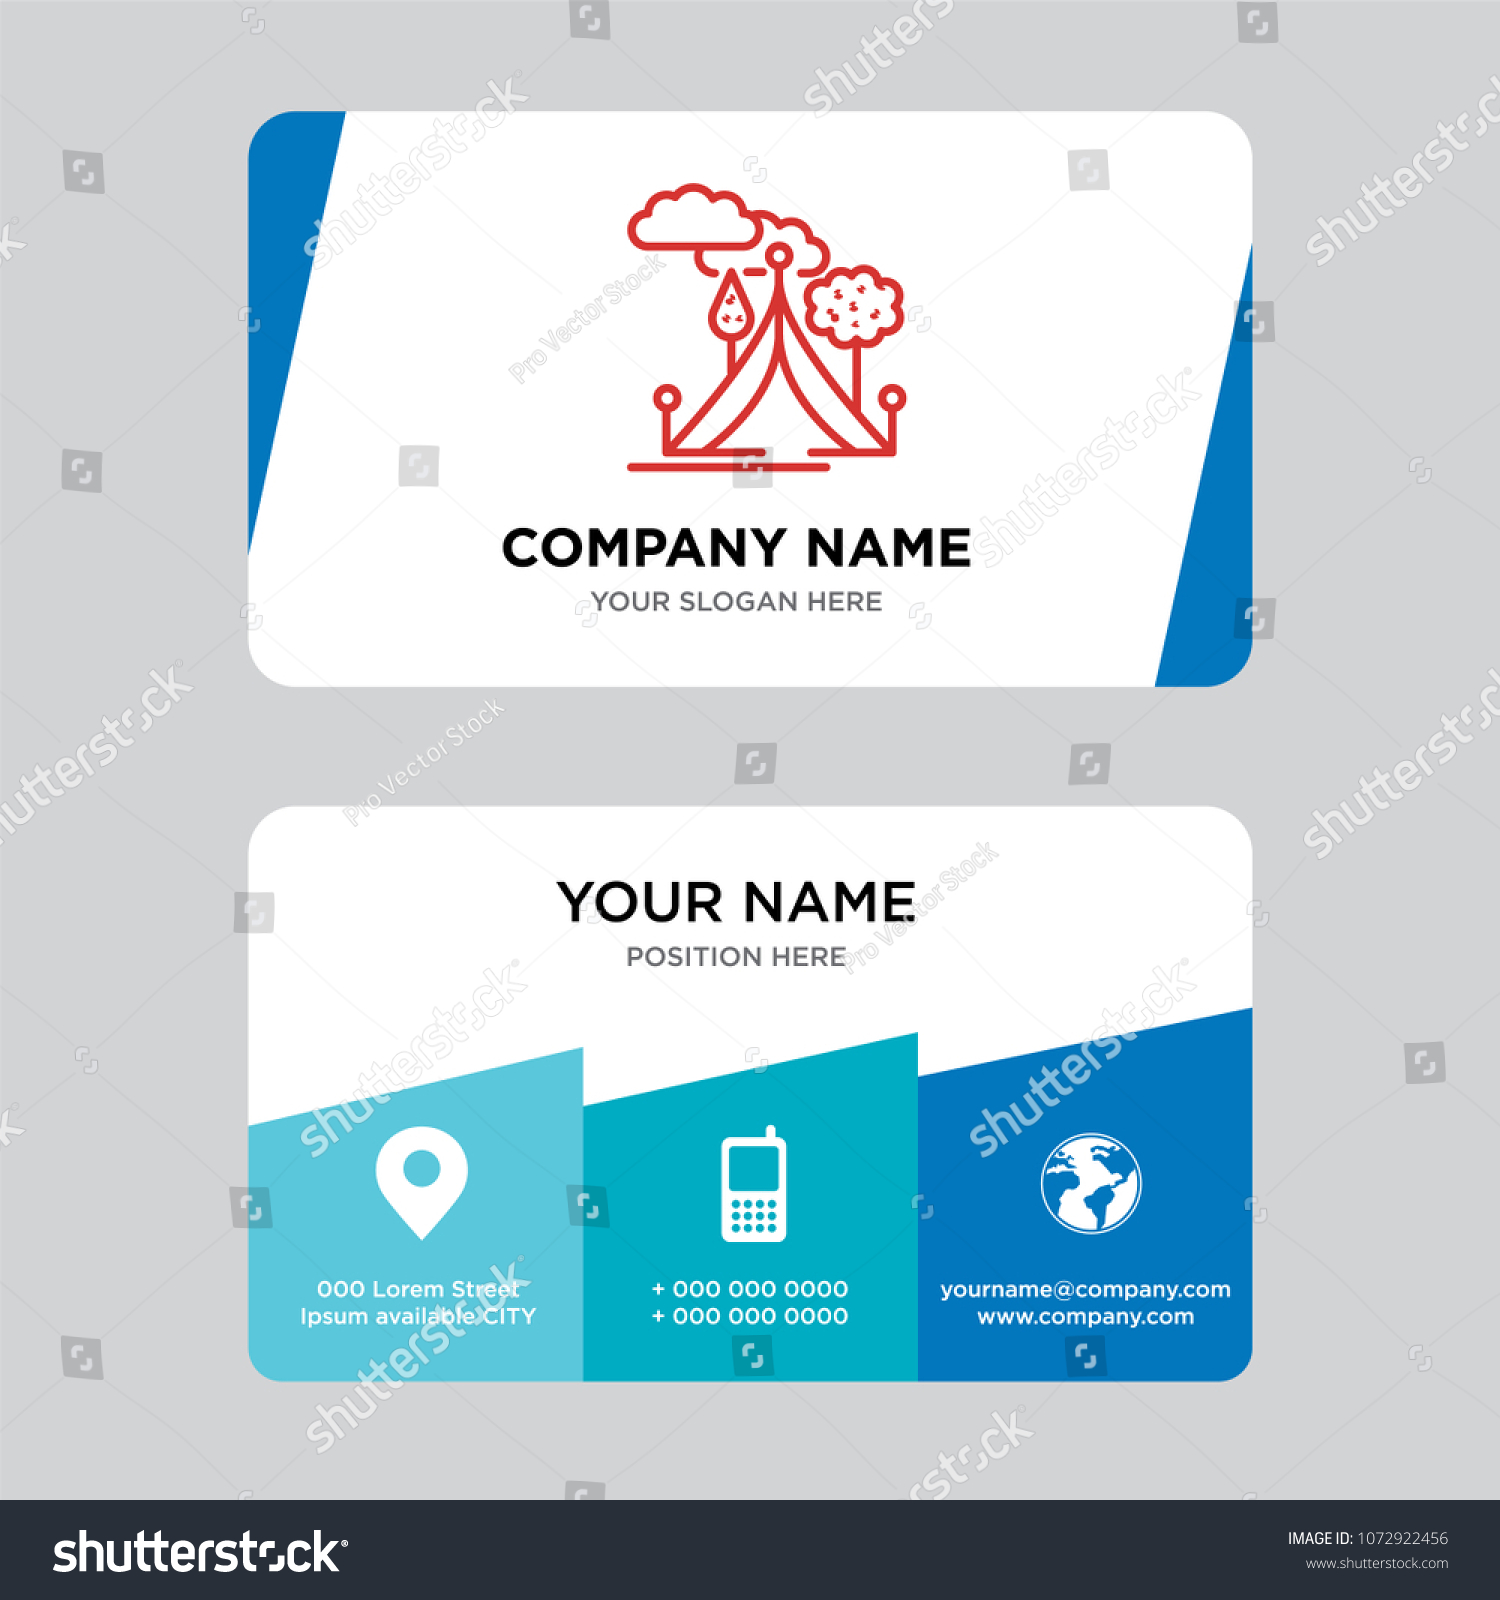 Tent Business Card Design Template Visiting Stock Photo (Photo ...